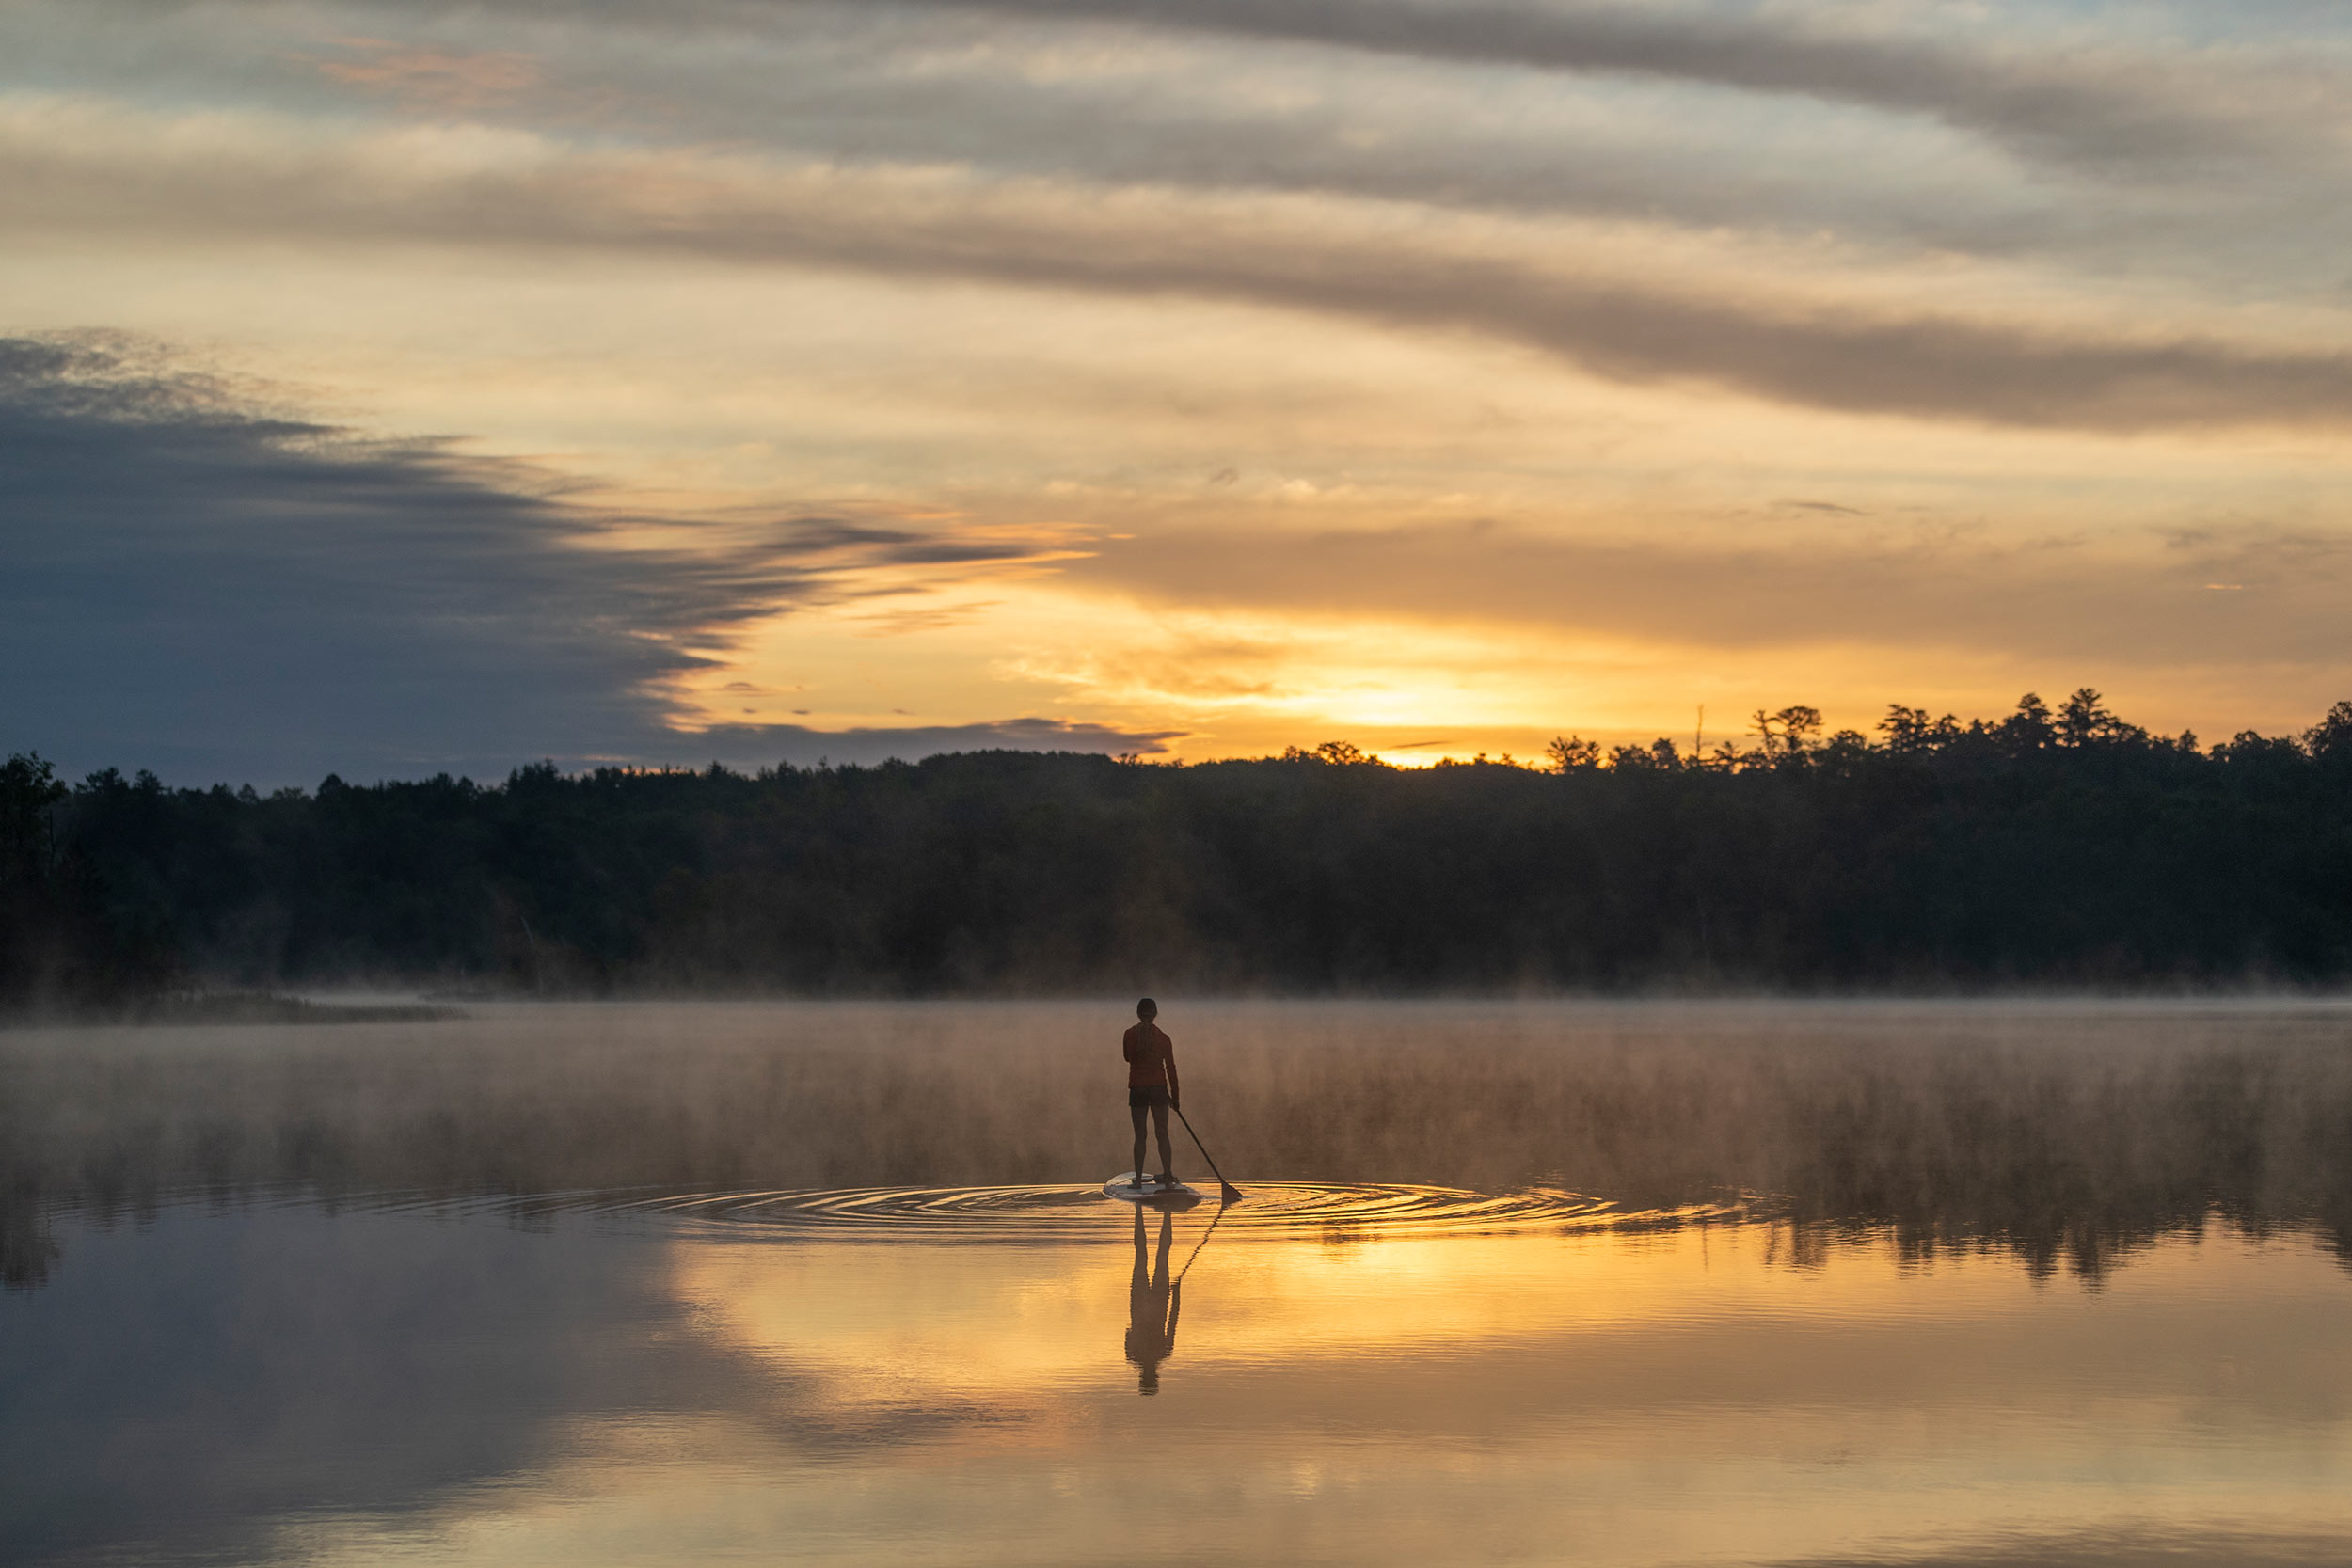 Morning-fog_paddleboard